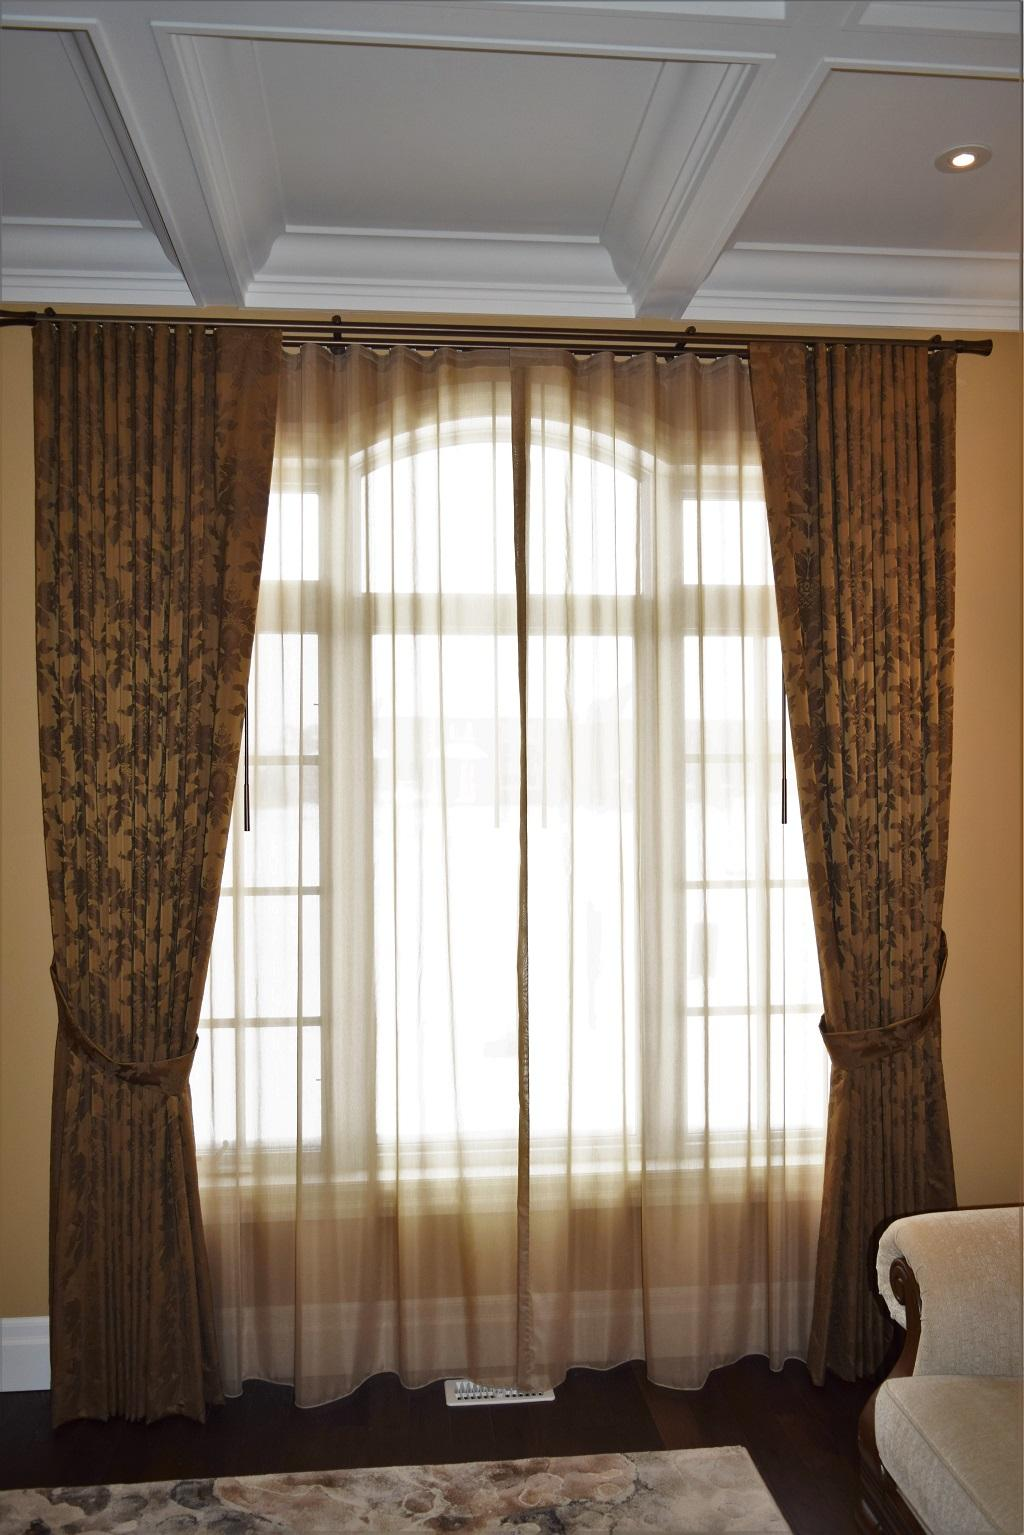 Budget Blinds à Waterloo: Ripplefold Drapery and Ripplefold Sheers provided this Waterloo homeowner with exactly the look they were after.